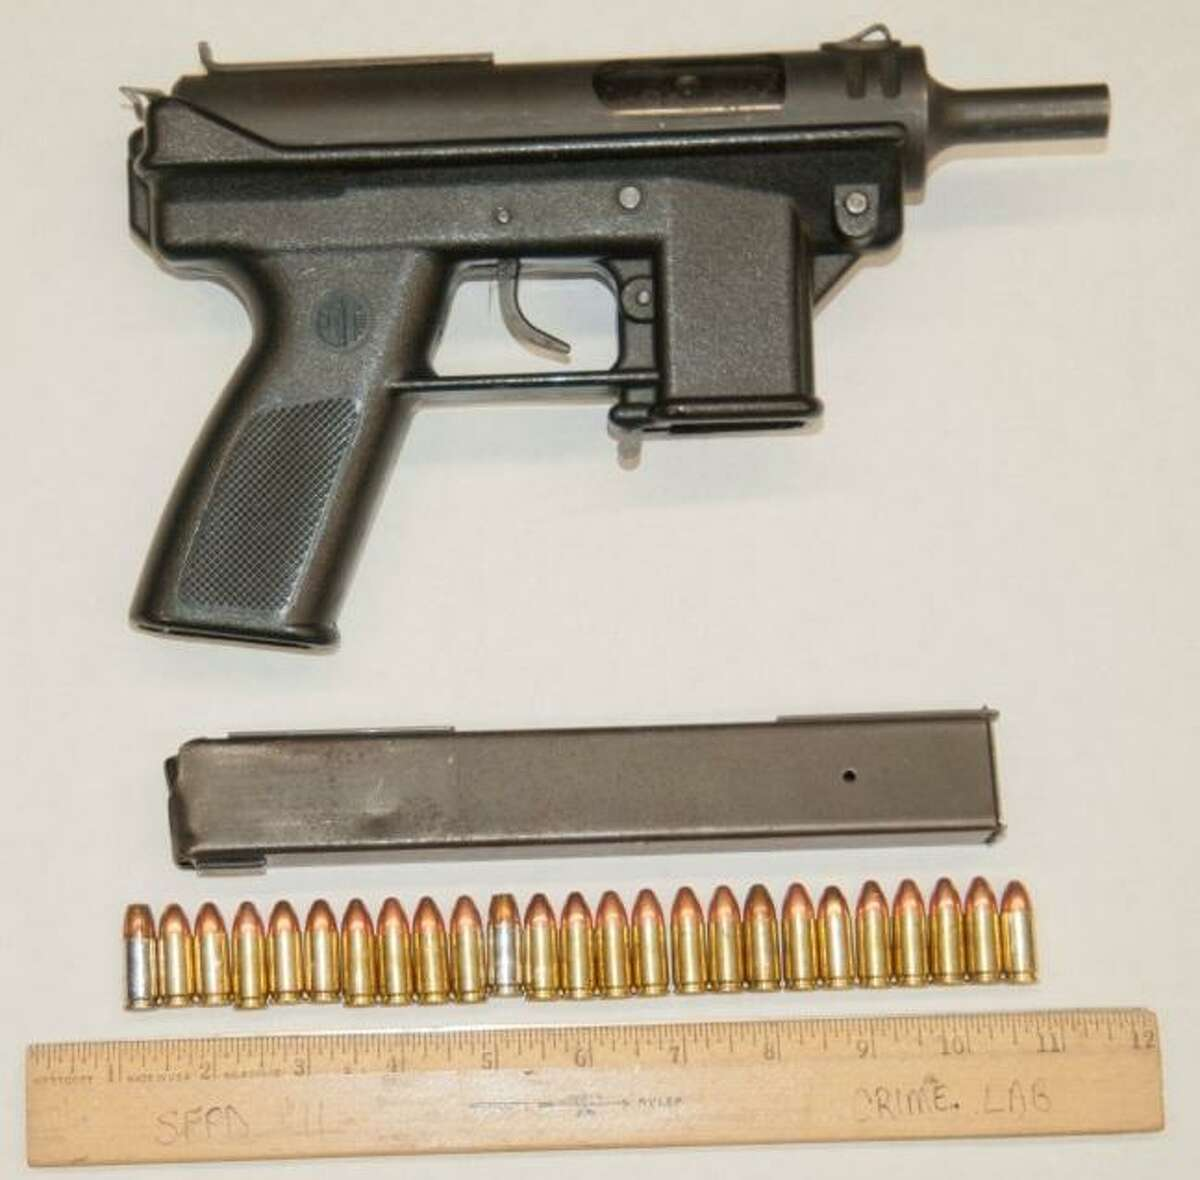 San Francisco police said Oliver Barcenas carried this Tec-9 assault pistol when he turned toward plain clothes officers in 2012 in San Francisco's Mission District.